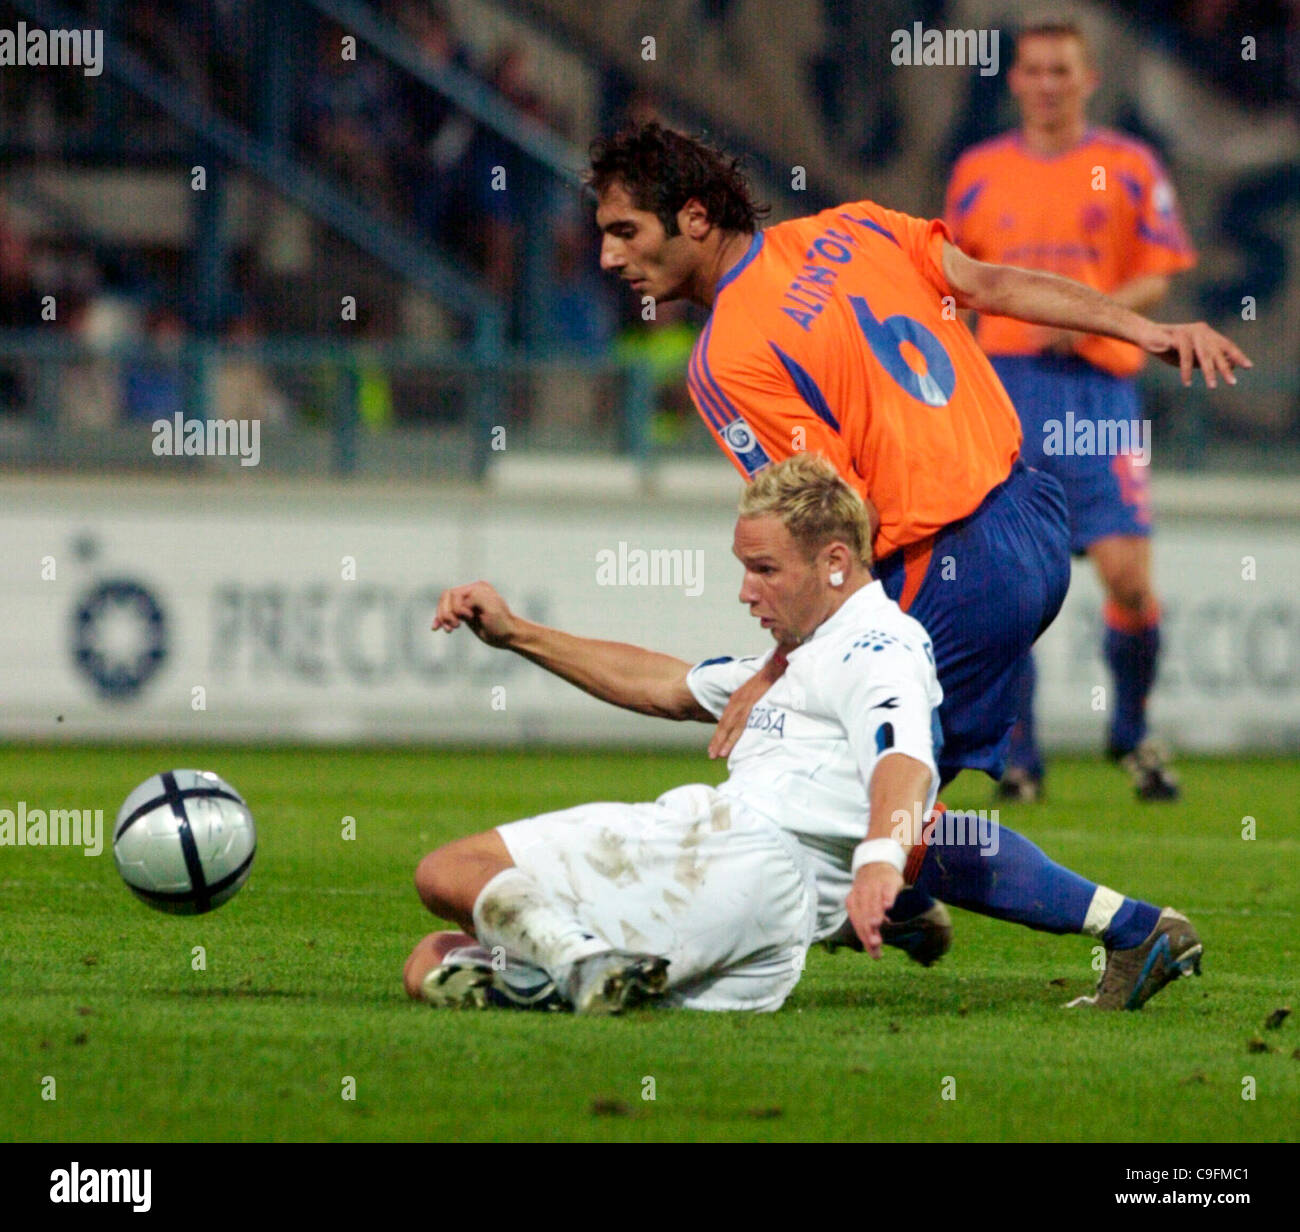 ****FILE PHOTO***Hamit Altintop of German club FC Schalke 04, right, fights for the ball with Jan Polak of Czech - Stock Image